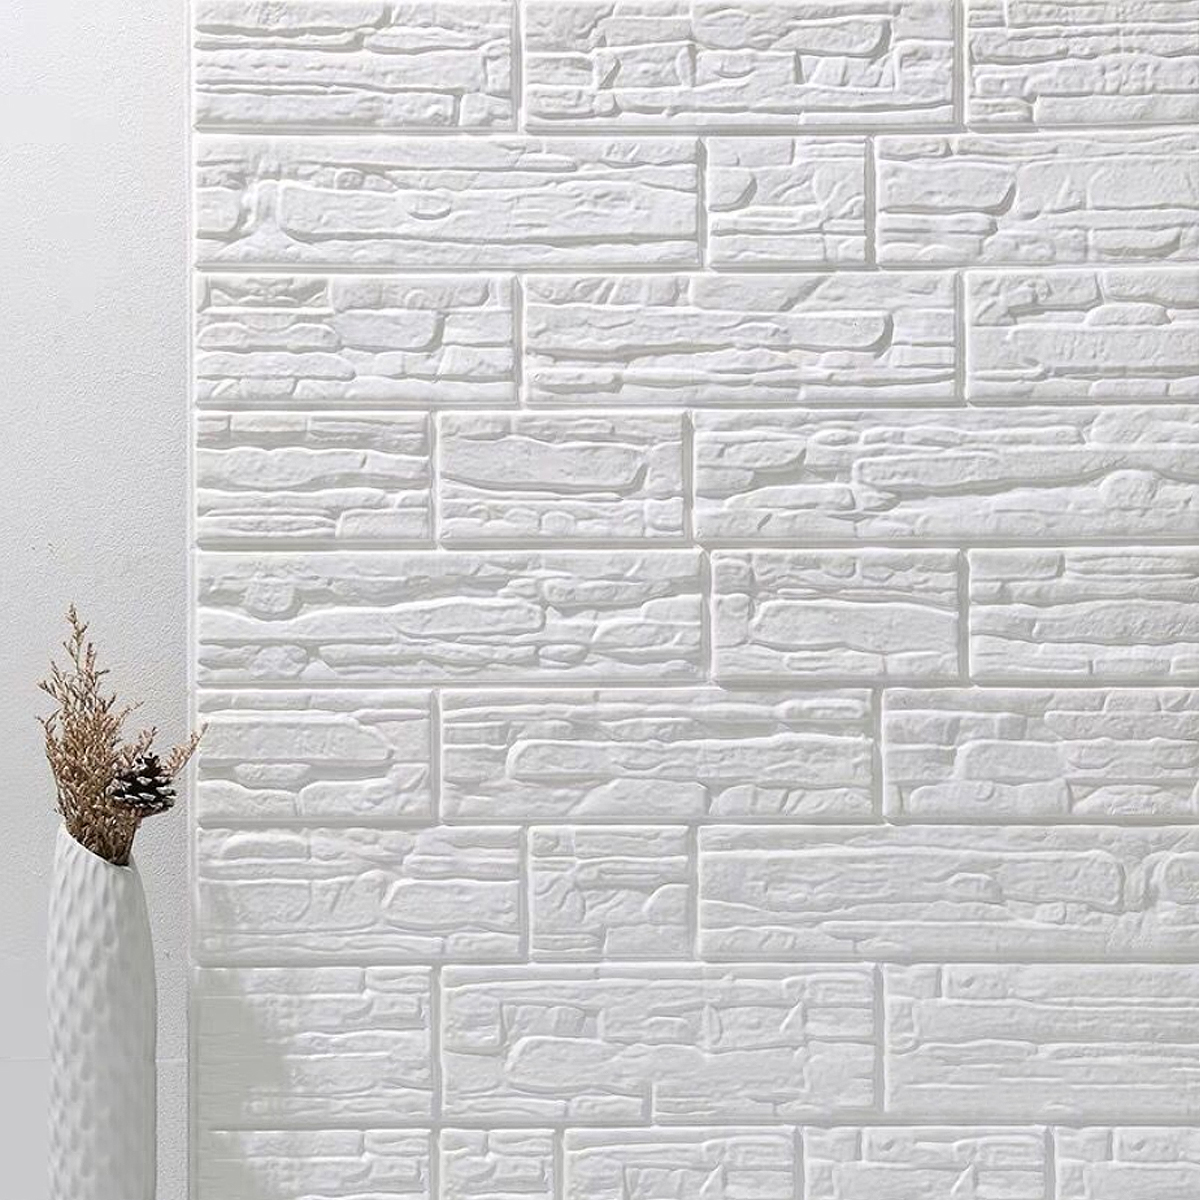 Foam 3D Tile Brick Wall Carved Wallpaper Panels Sticker Self-Adhesive DIY Decor